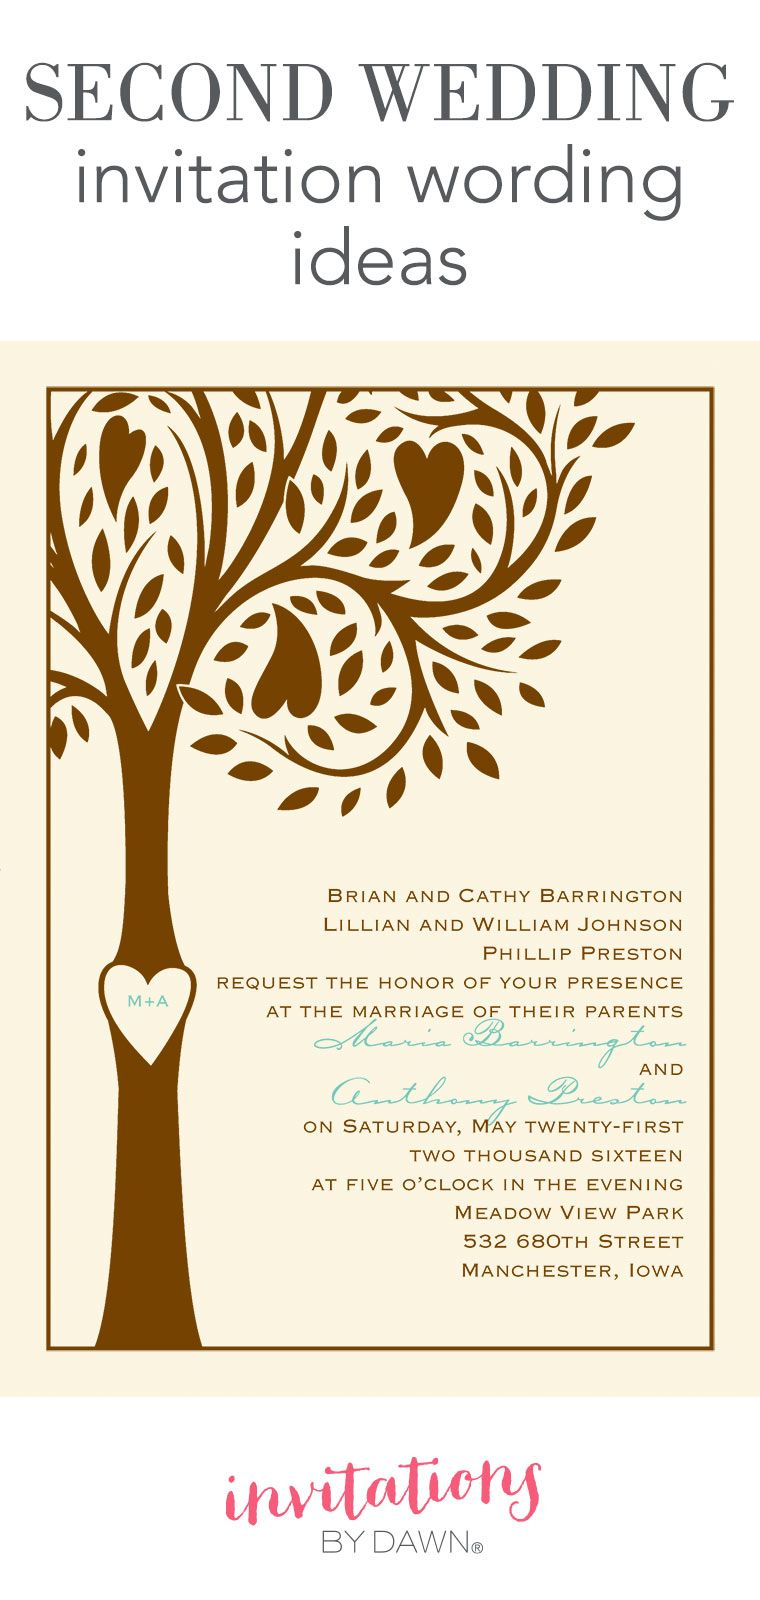 Second Wedding Invitation Wording Might Seem Like A Tricky Subject But It Can Be Quite Simple: Rustic Barn Wedding Invitations Wordings At Reisefeber.org